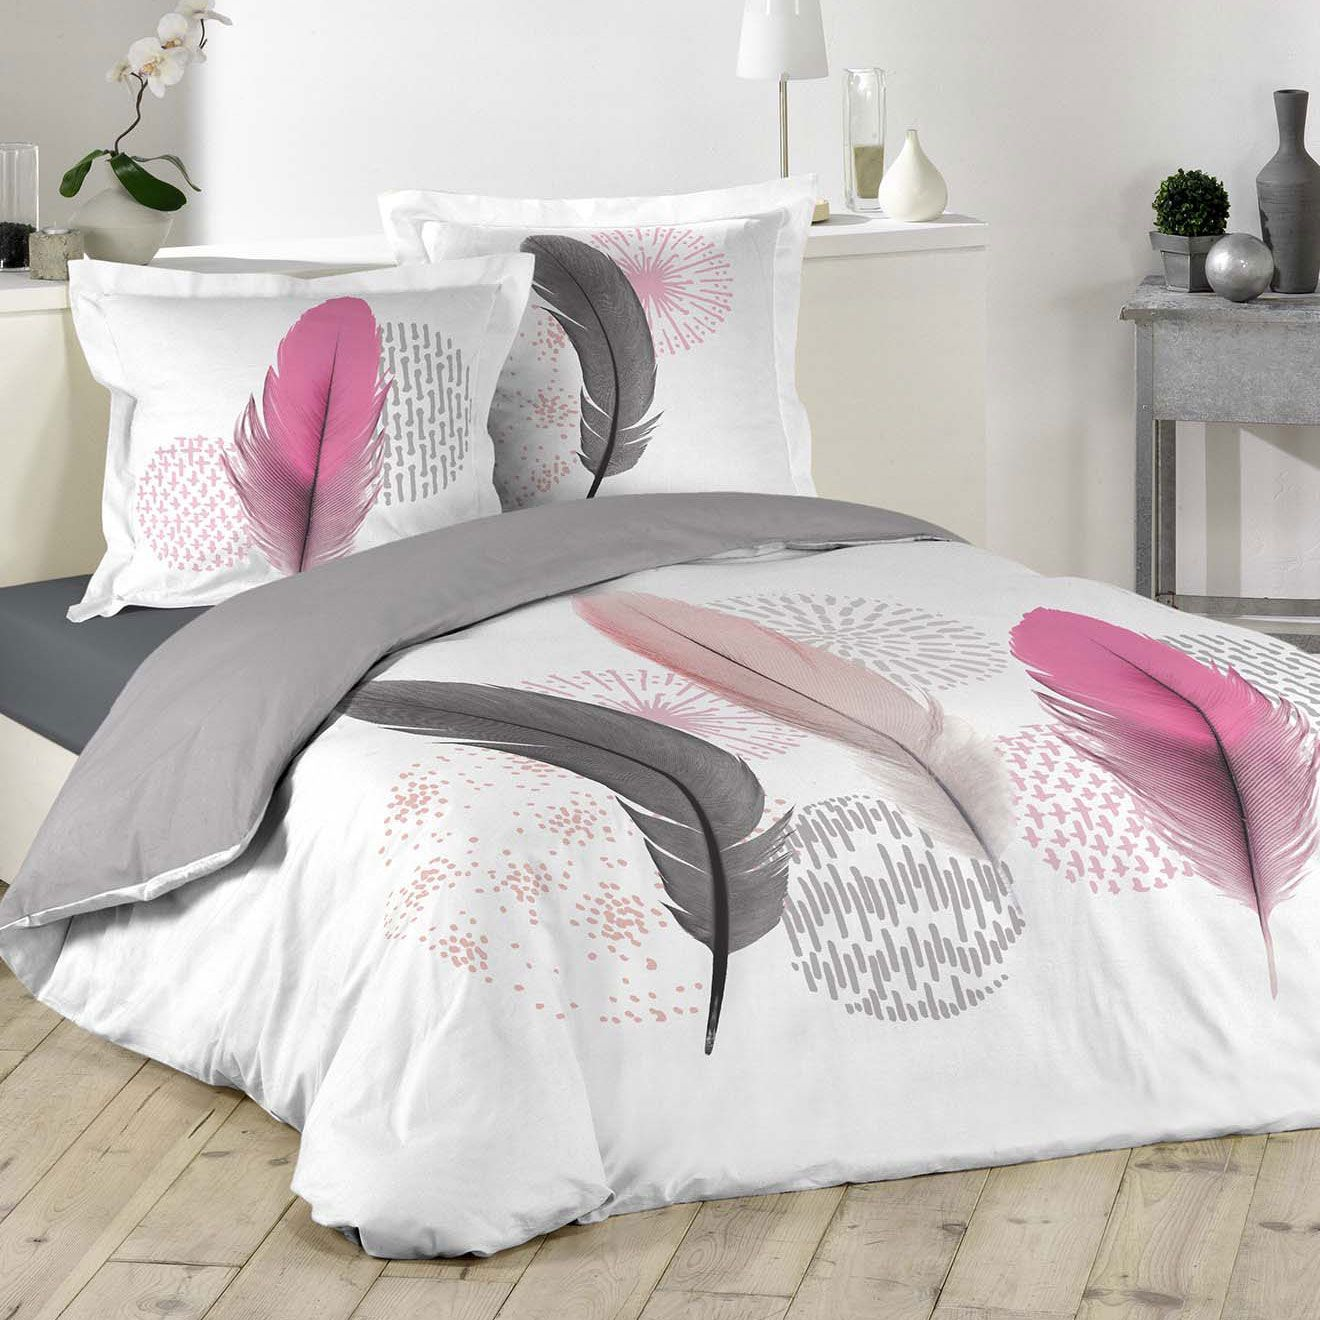 housse de couette et deux taies pink dream 100 coton 240. Black Bedroom Furniture Sets. Home Design Ideas